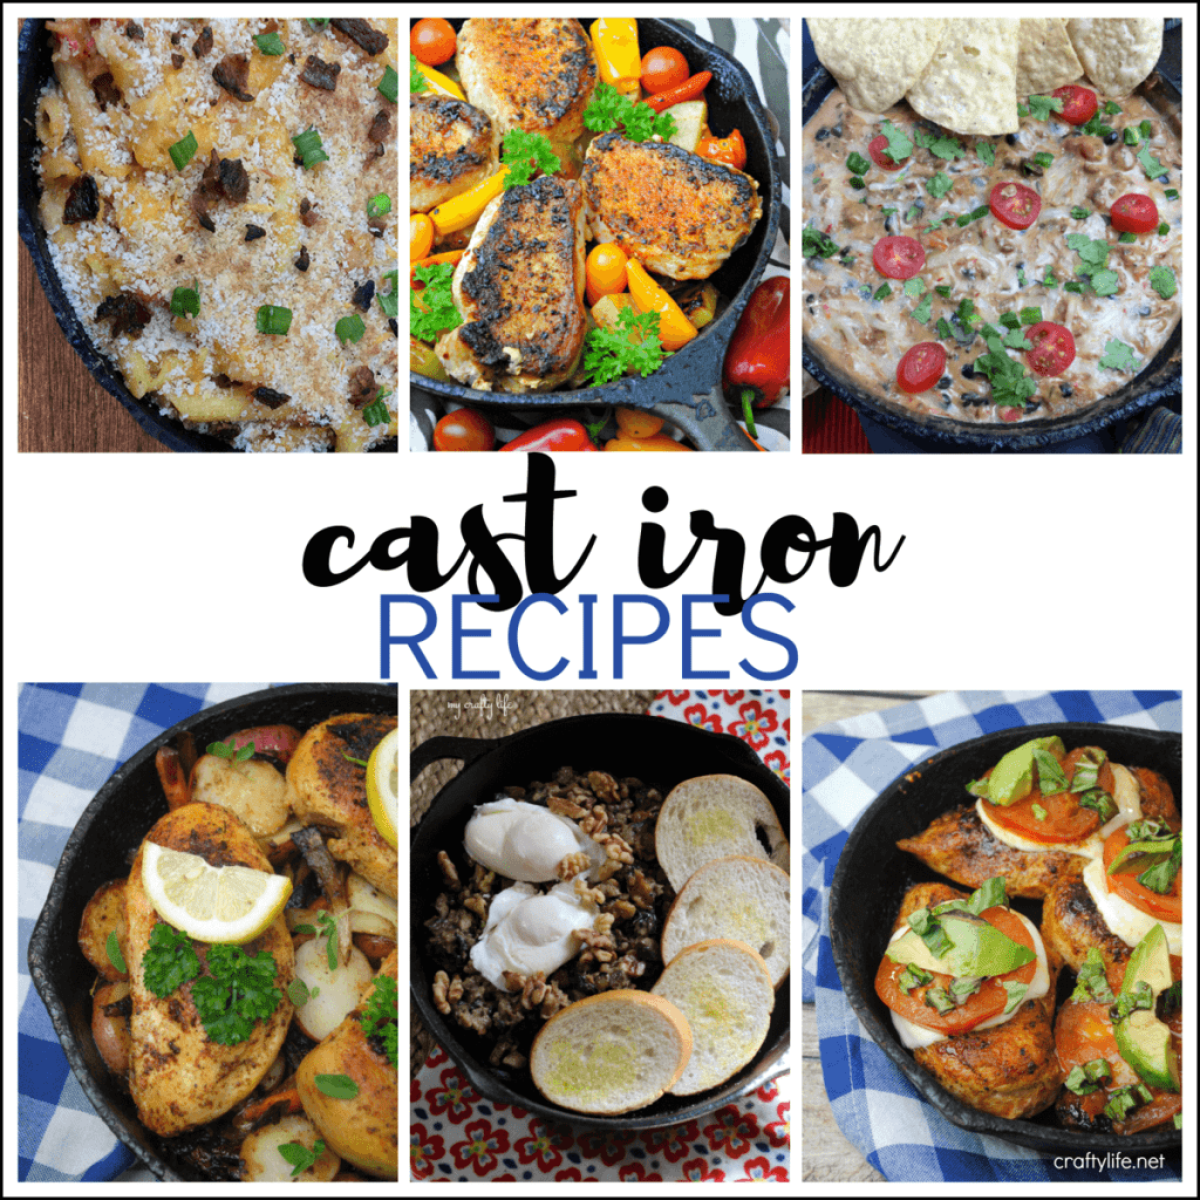 Make flavorful cast iron recipes in your fantastic, versatile cast iron cookware. Once you try it, you will never go back!